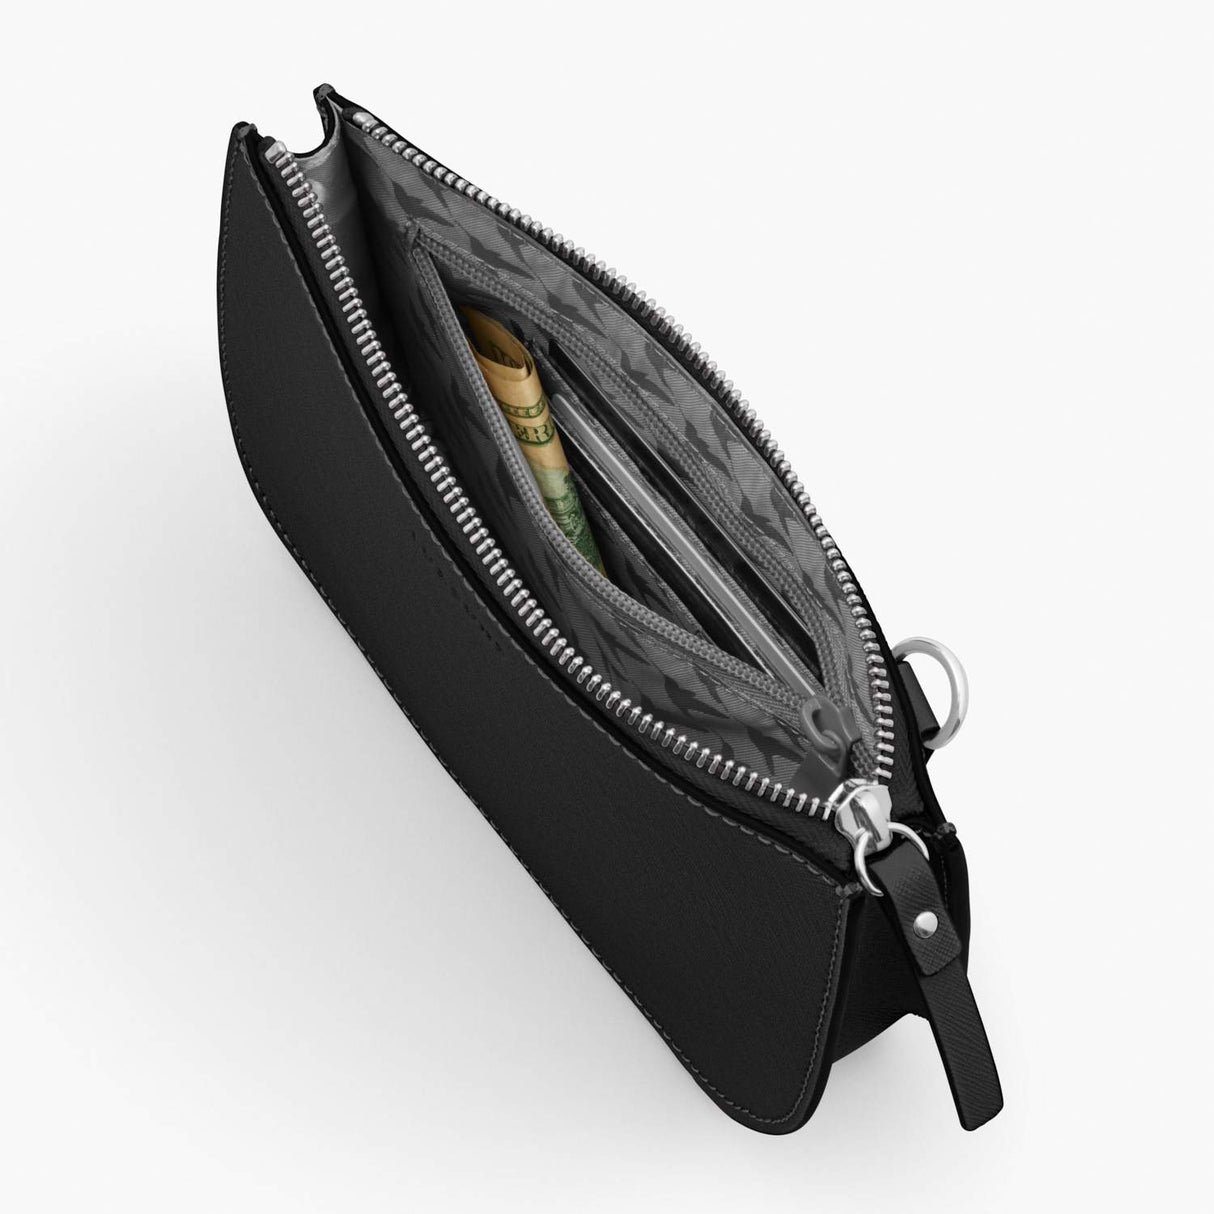 Interior Zipper - Waverley 2 - Saffiano Leather - Black / Silver / Grey - Crossbody Bag - Lo & Sons